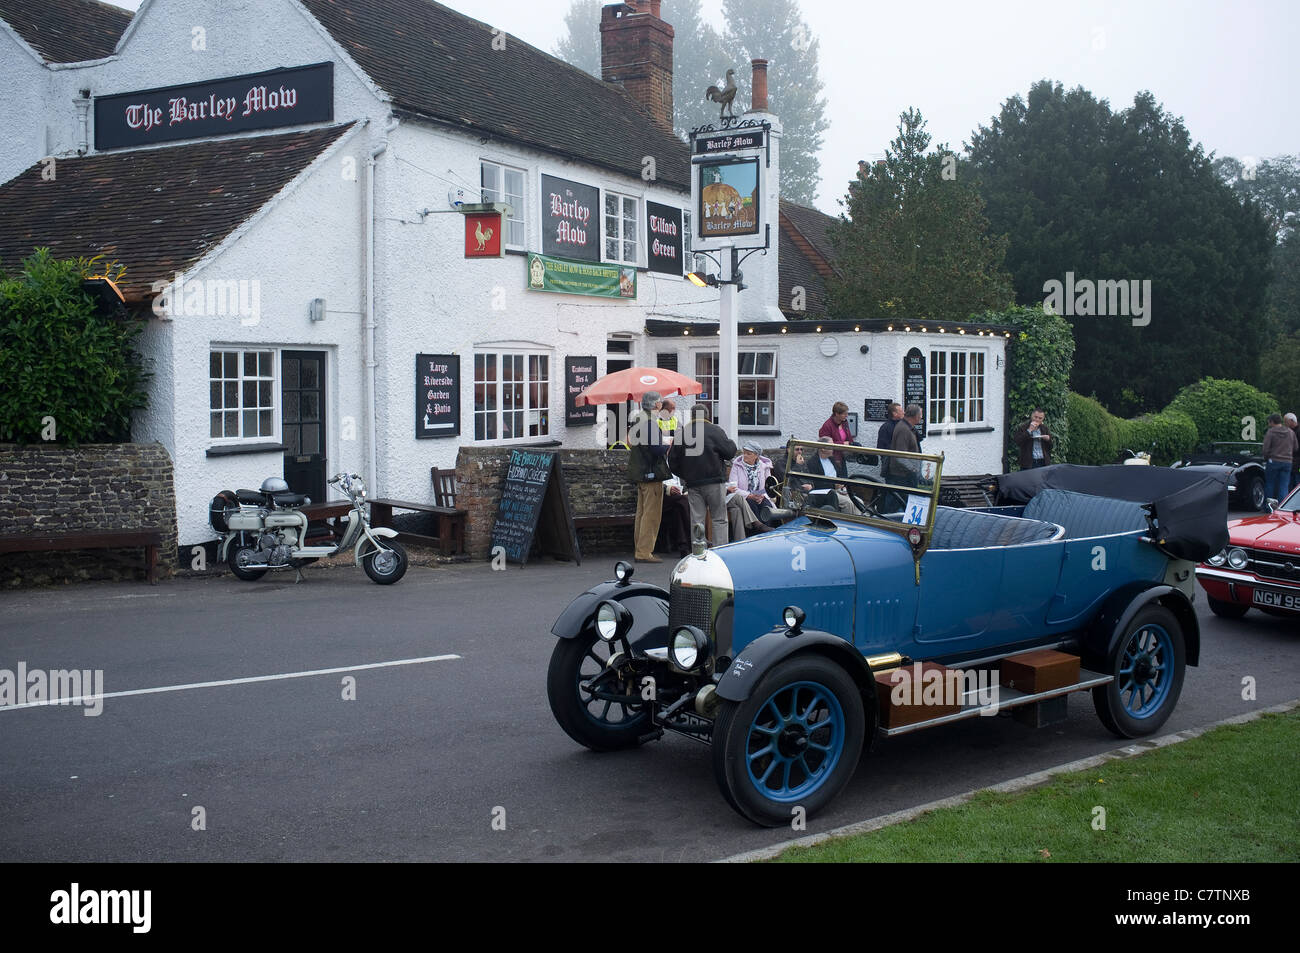 Bull None Morris Car at The barley Mow Tilford Surrey -1 - Stock Image